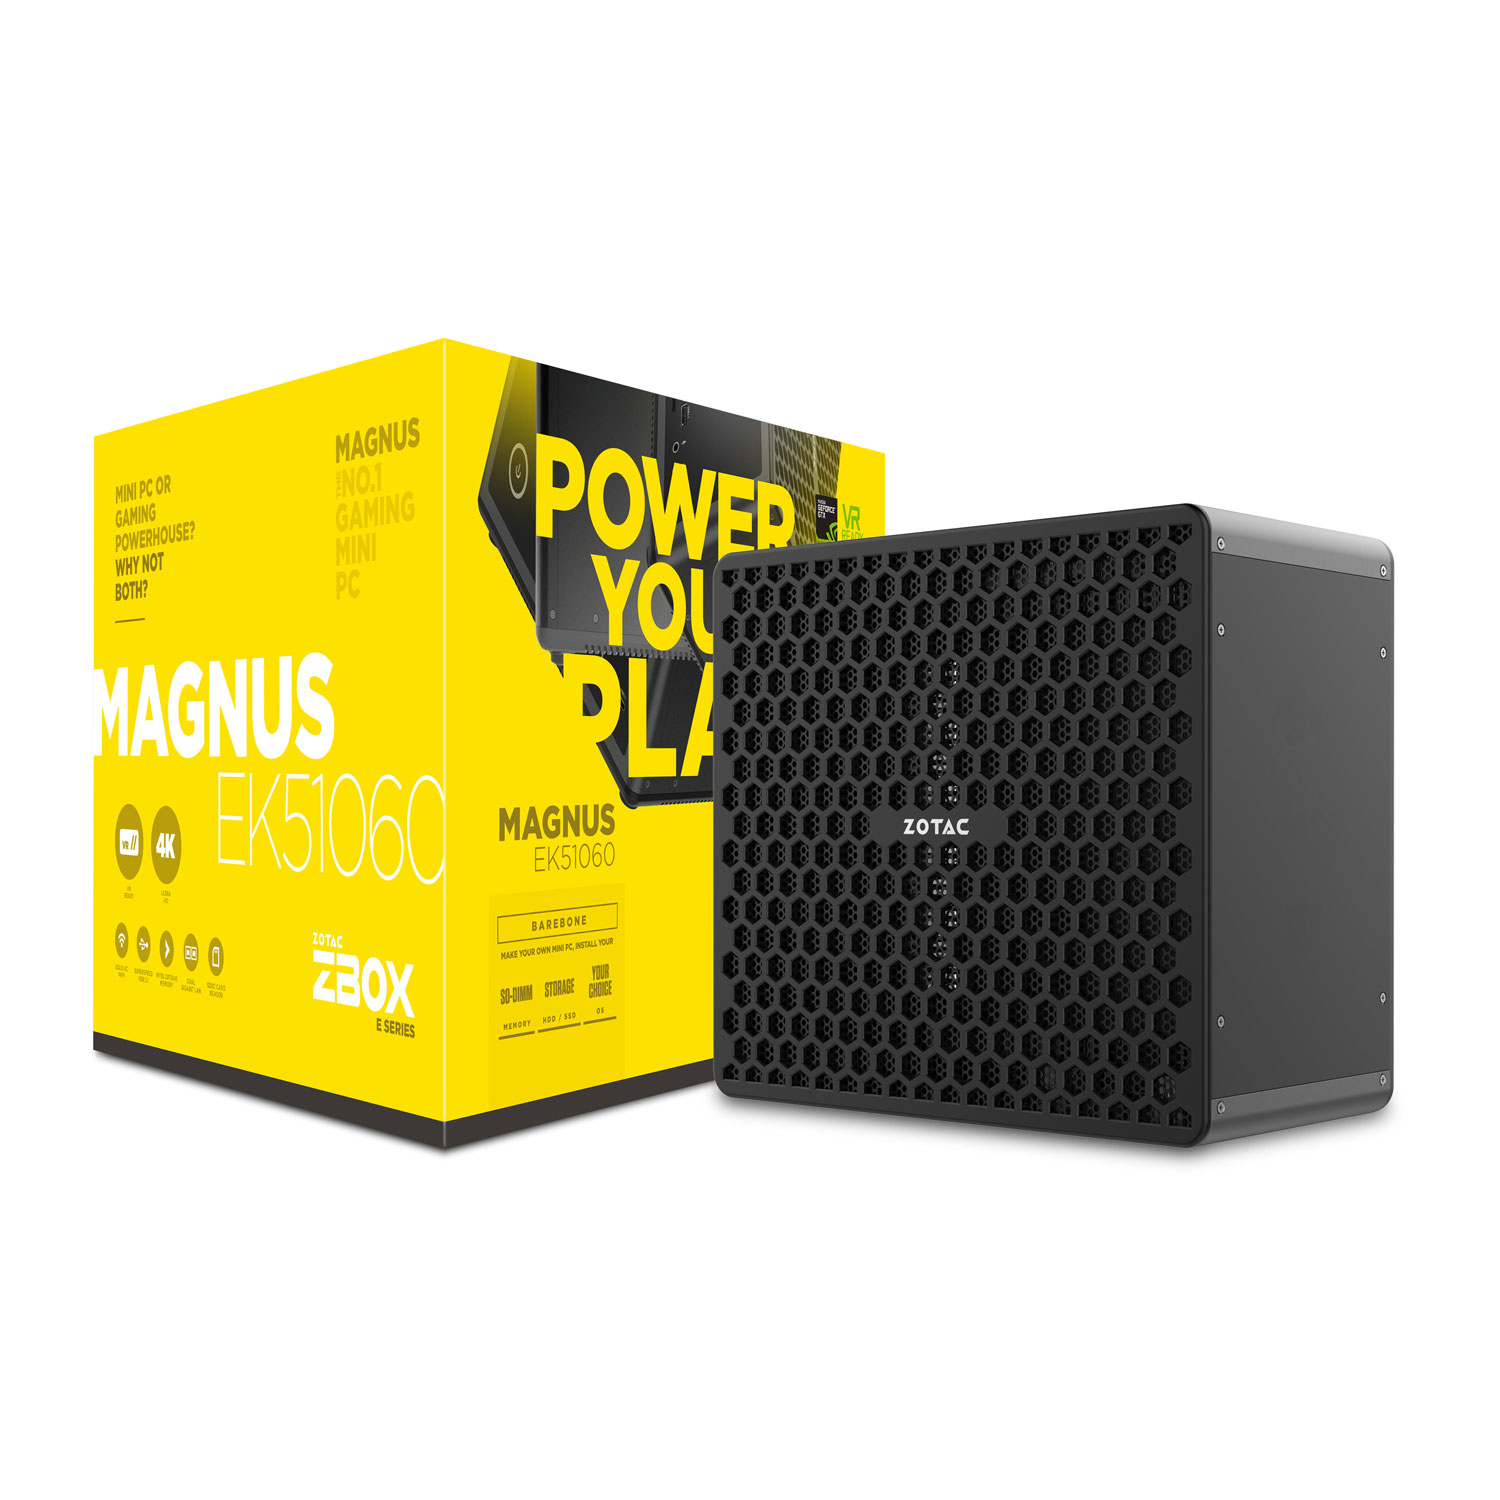 Barebone PC ZOTAC ZBOX MAGNUS EK51060 Intel Core i5-7300HQ GeForce GTX 1060 Wi-Fi AC / Bluetooth 4.2 (sans écran/mémoire/disque dur)